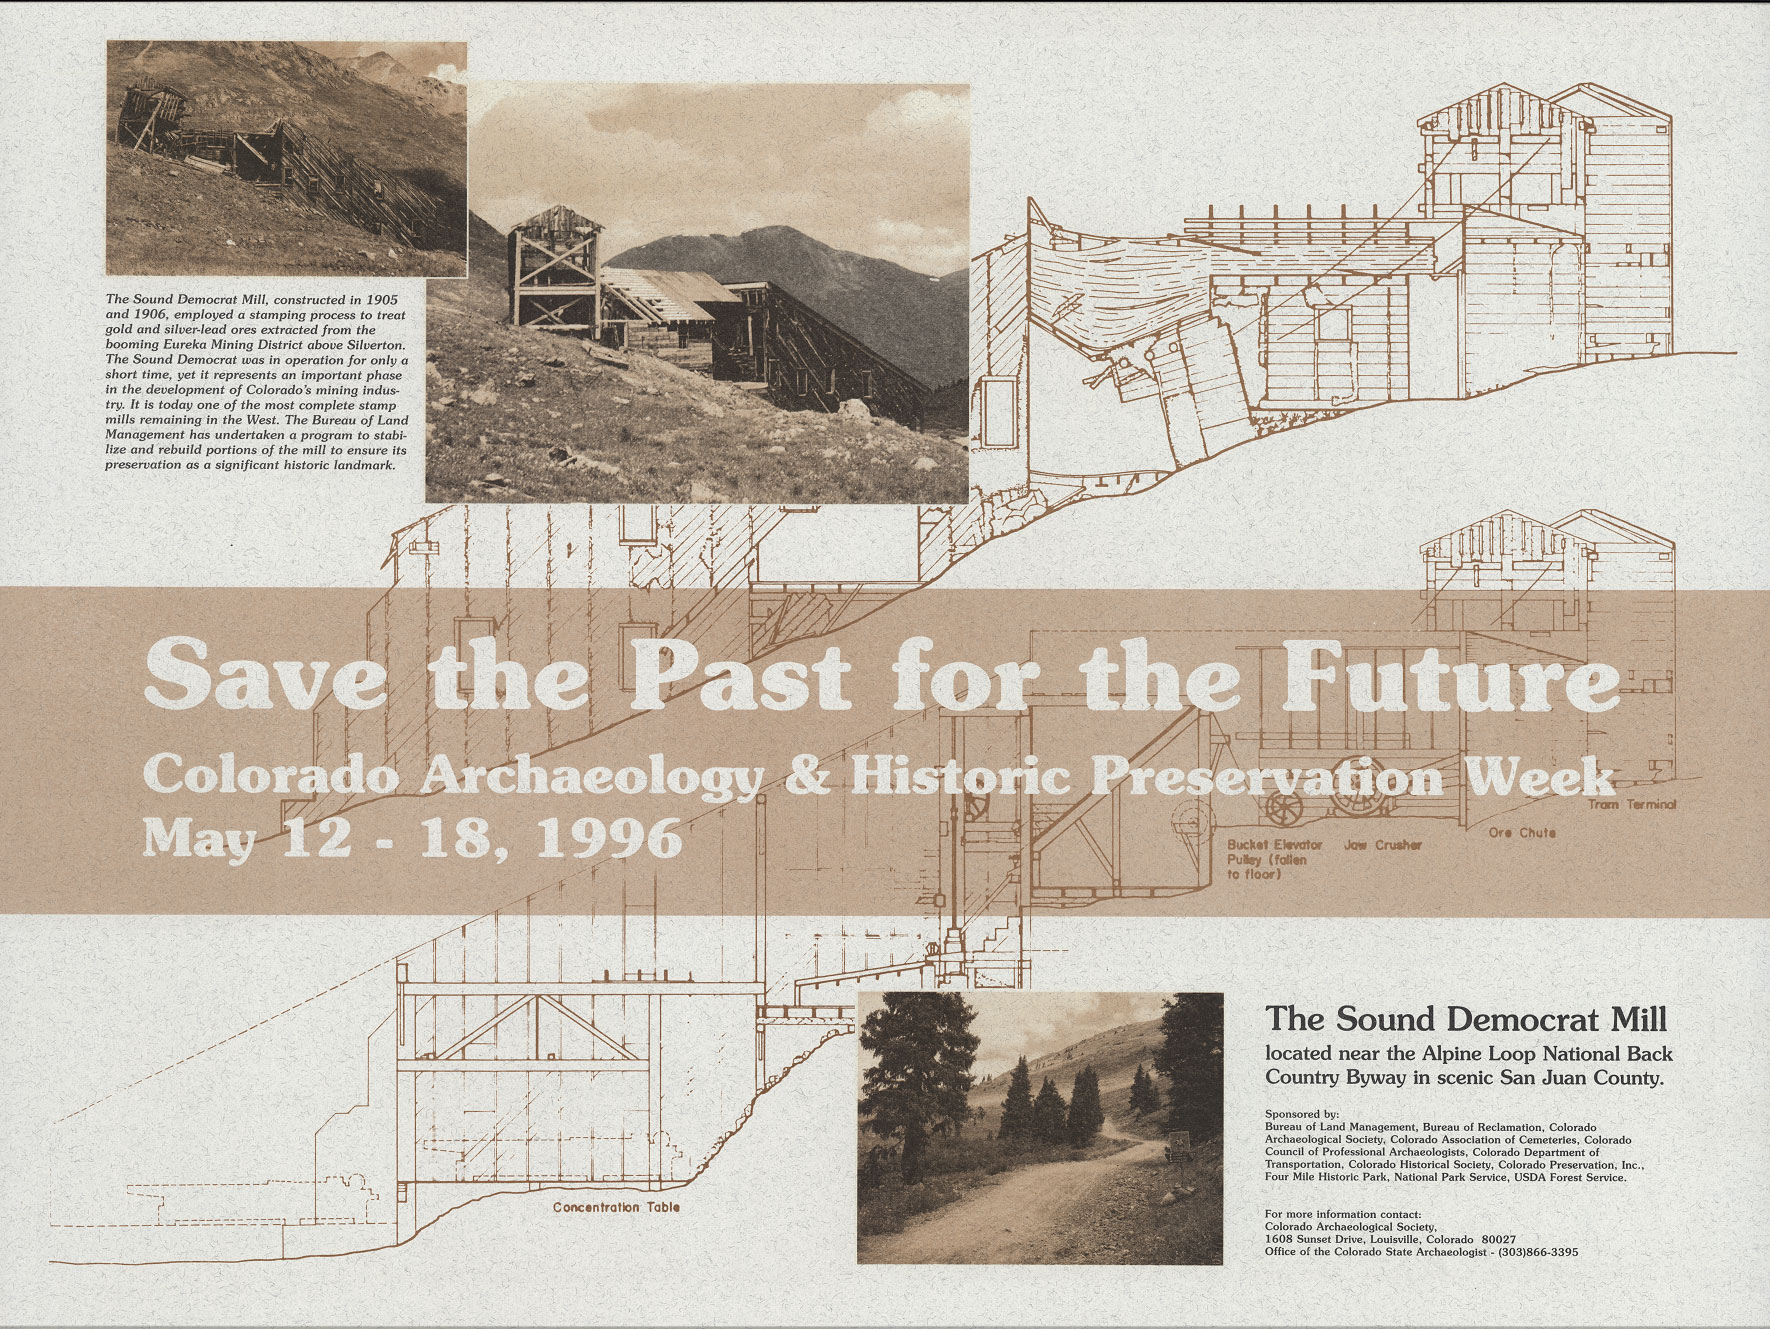 1996 Archaeology & Historic Preservation Week poster.